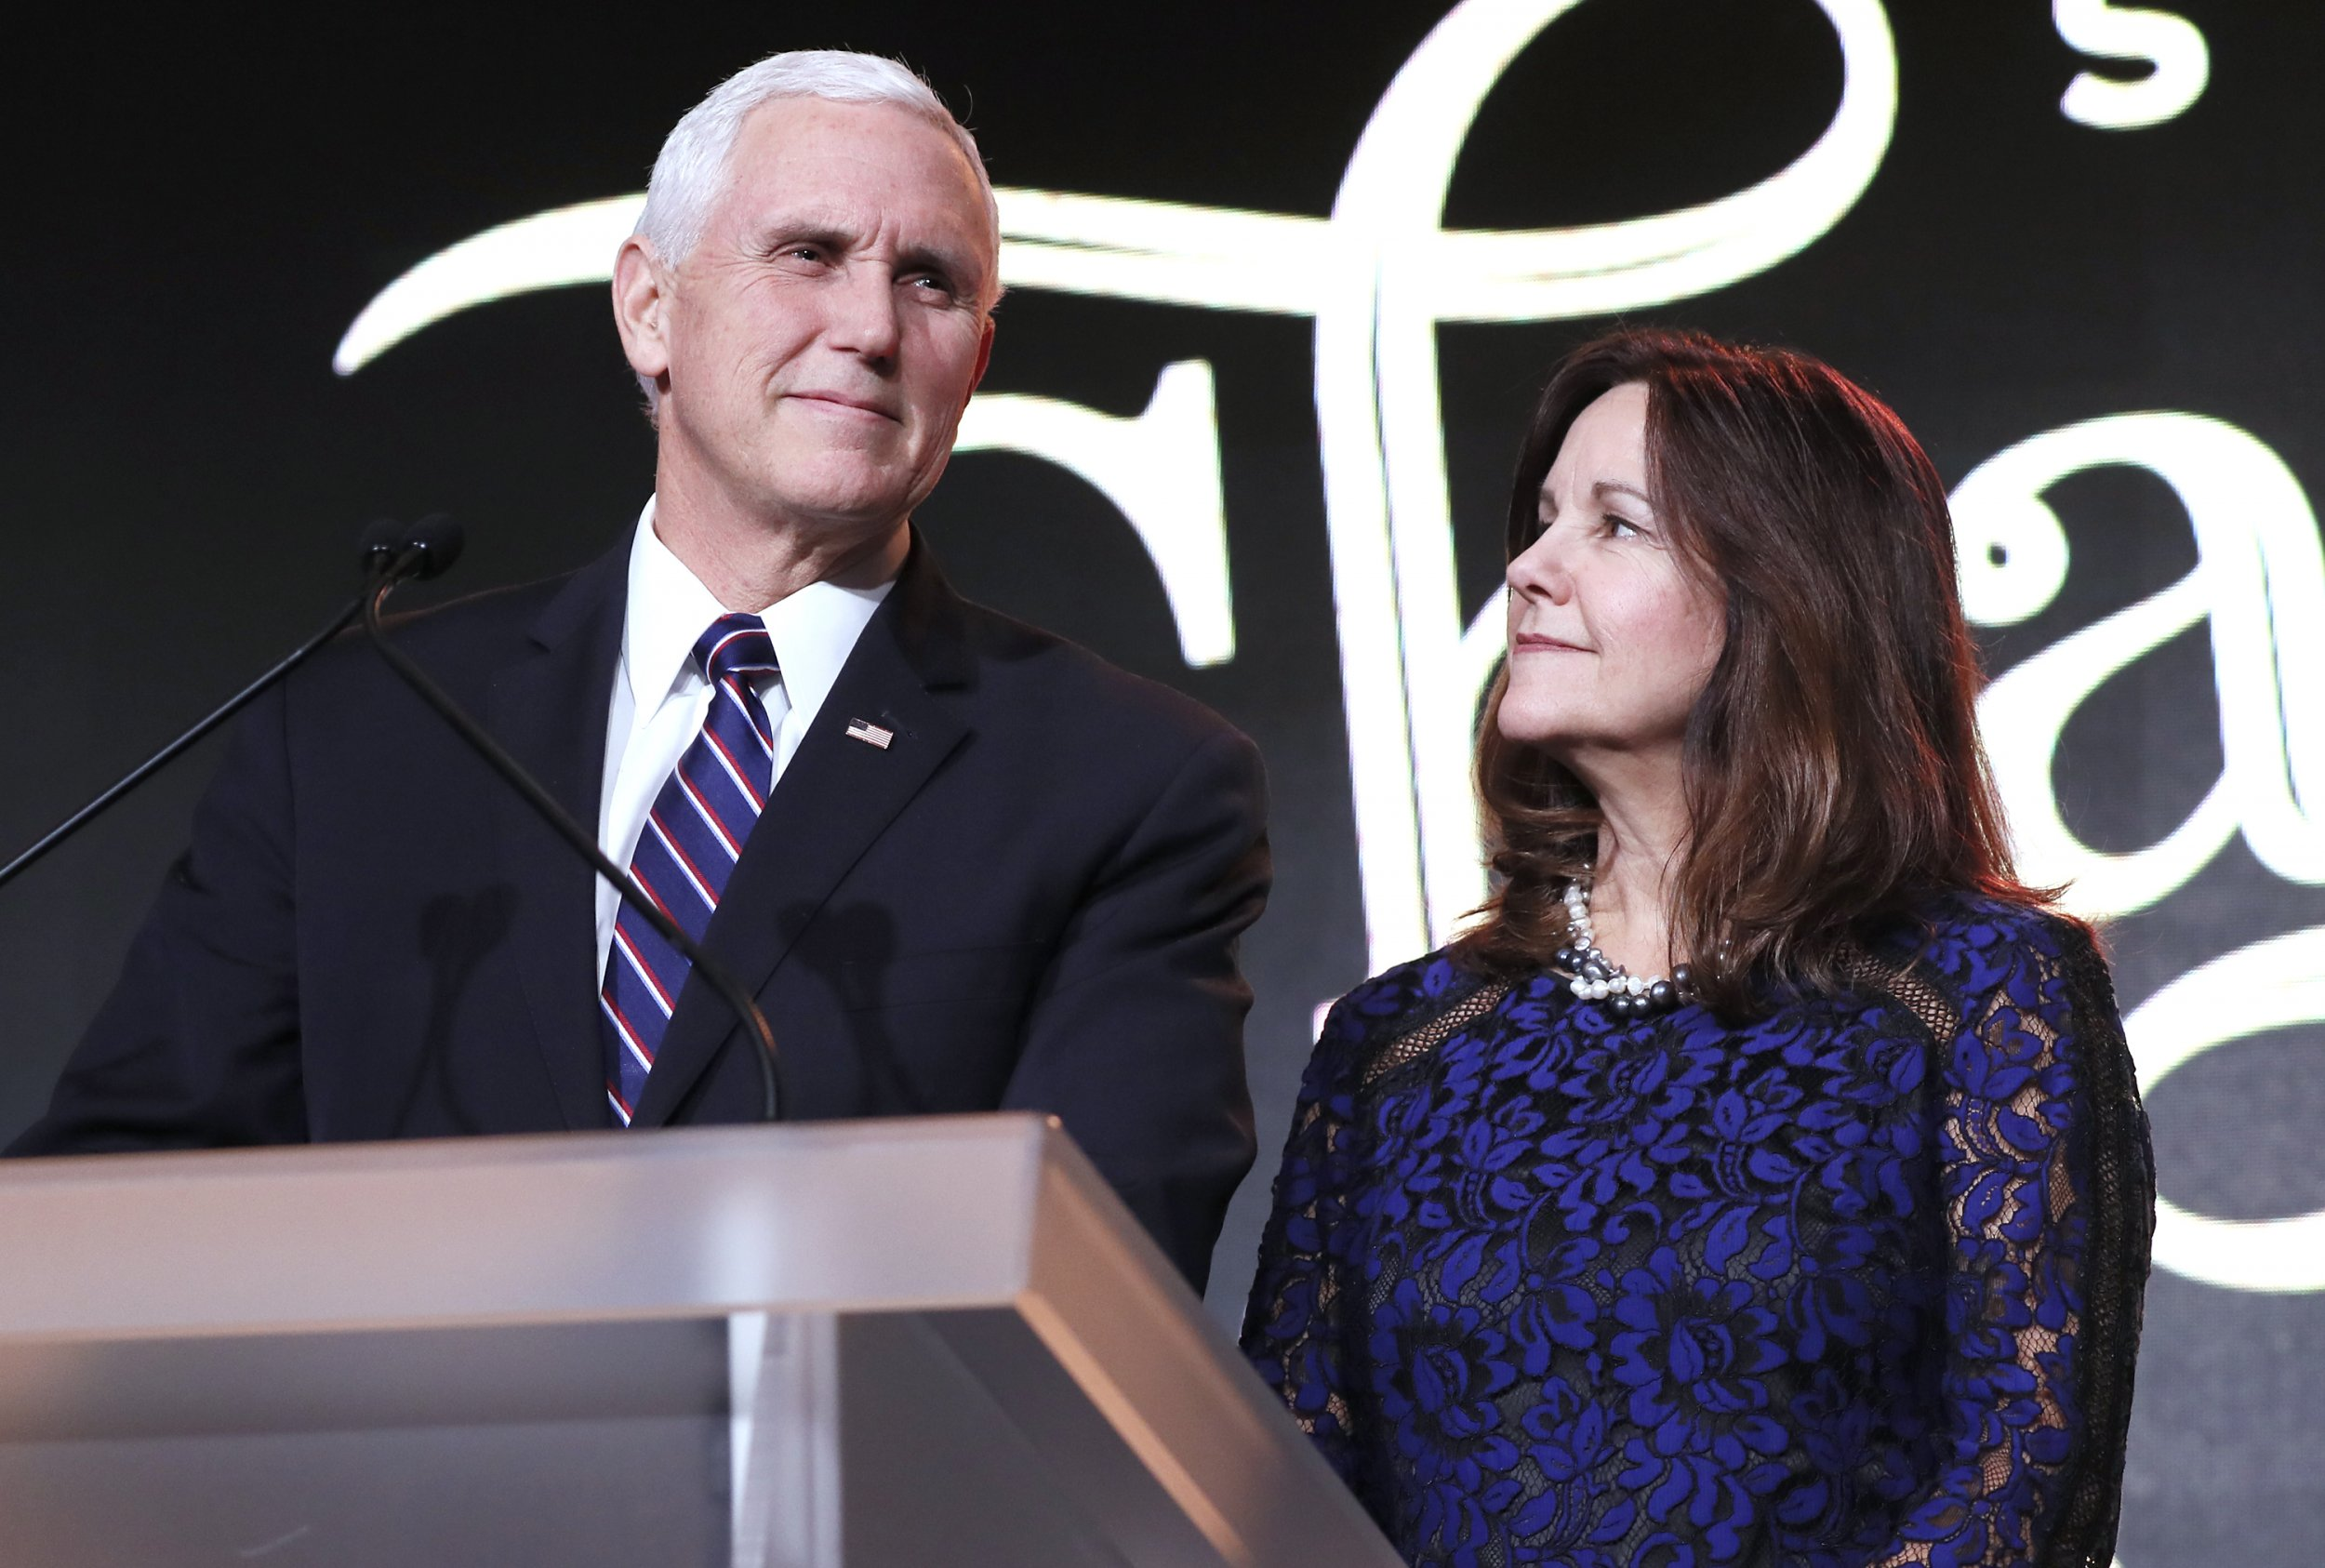 Mike Pence and Karen Pence